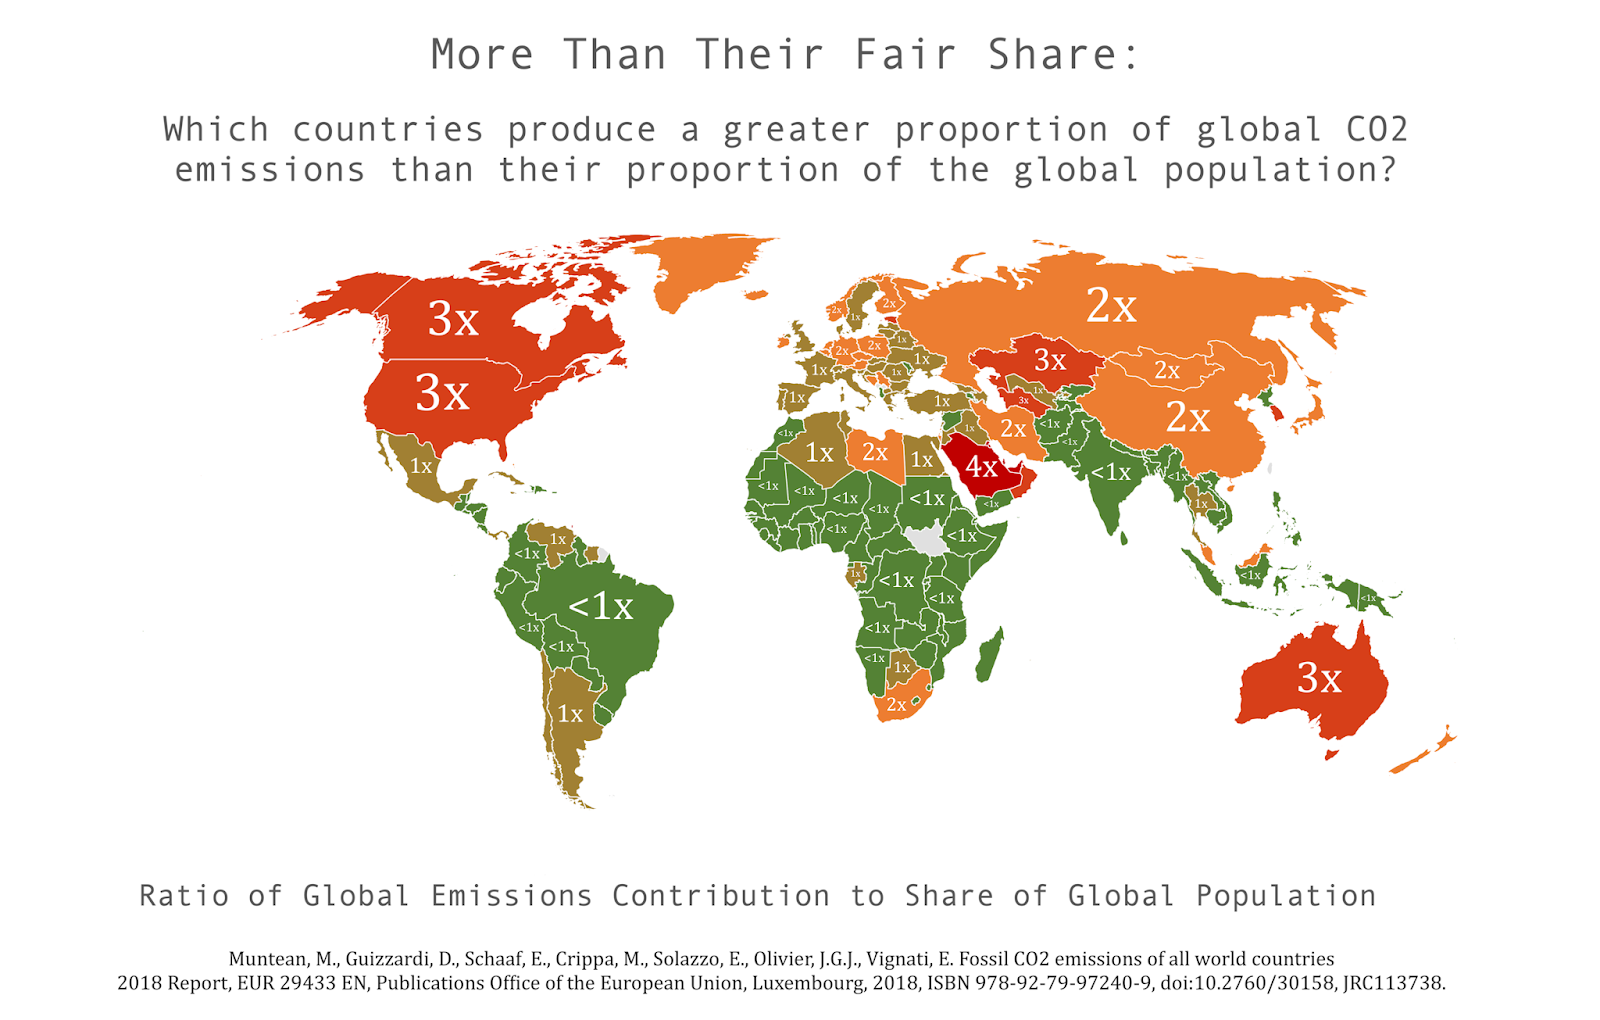 Ratio of global emissions contribution to share of global population